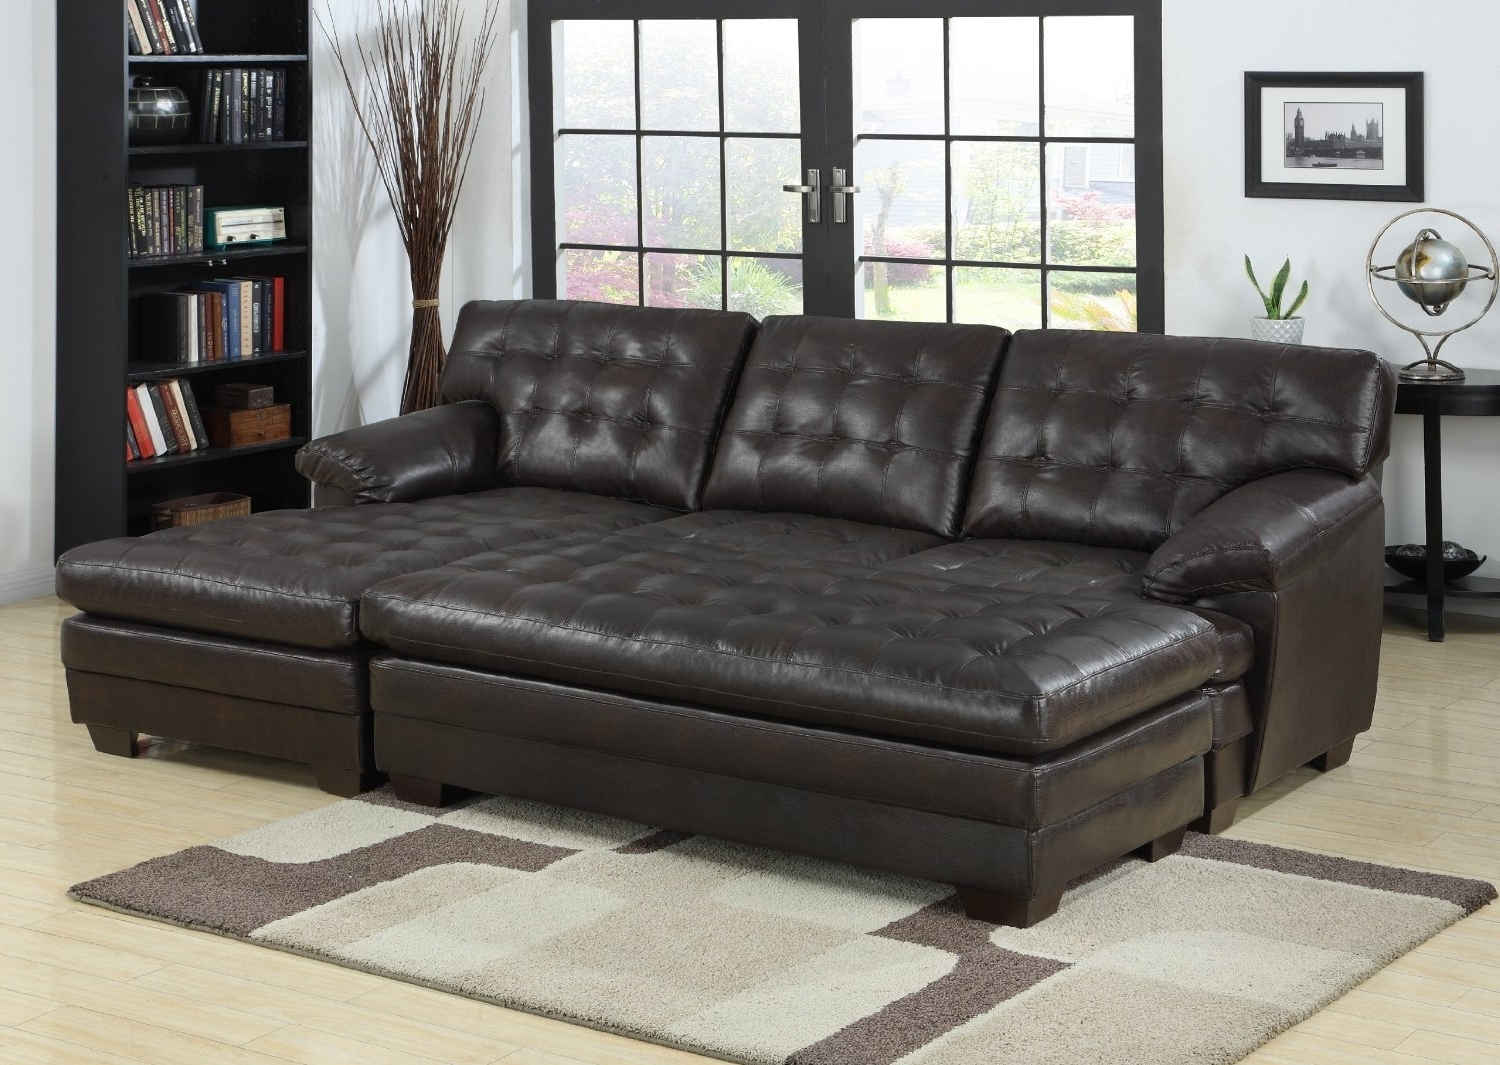 Popular Armchair : Leather Sectional Sleeper Sofa With Chaise Sectional With Leather Sofas With Chaise Lounge (View 5 of 15)